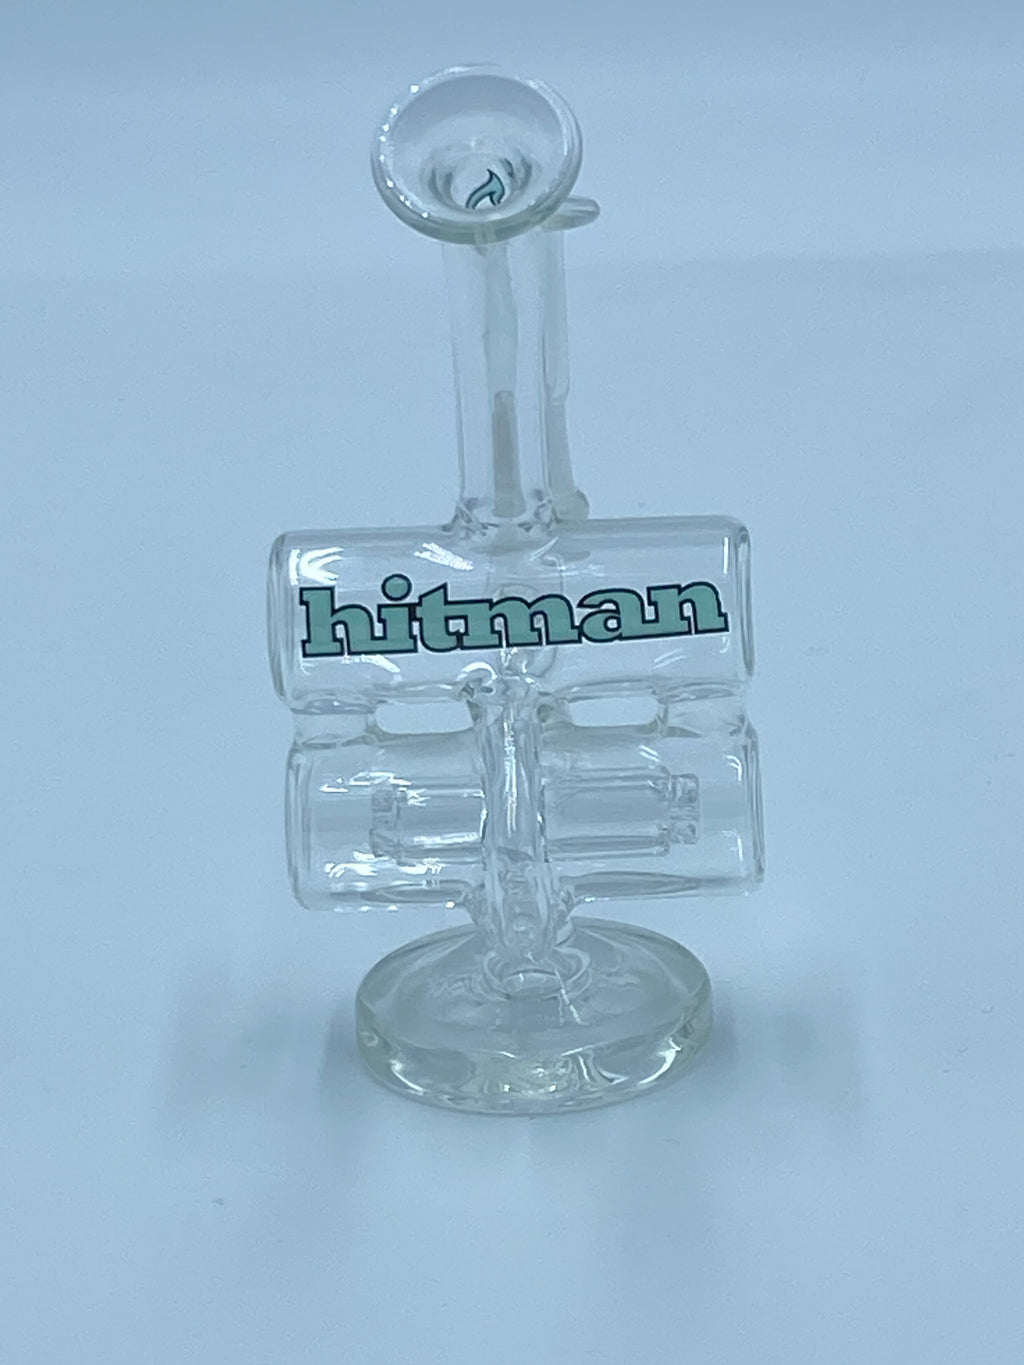 HITMAN DOUBLE BARREL RIG - Smoke Country - Land of the artistic glass blown bongs